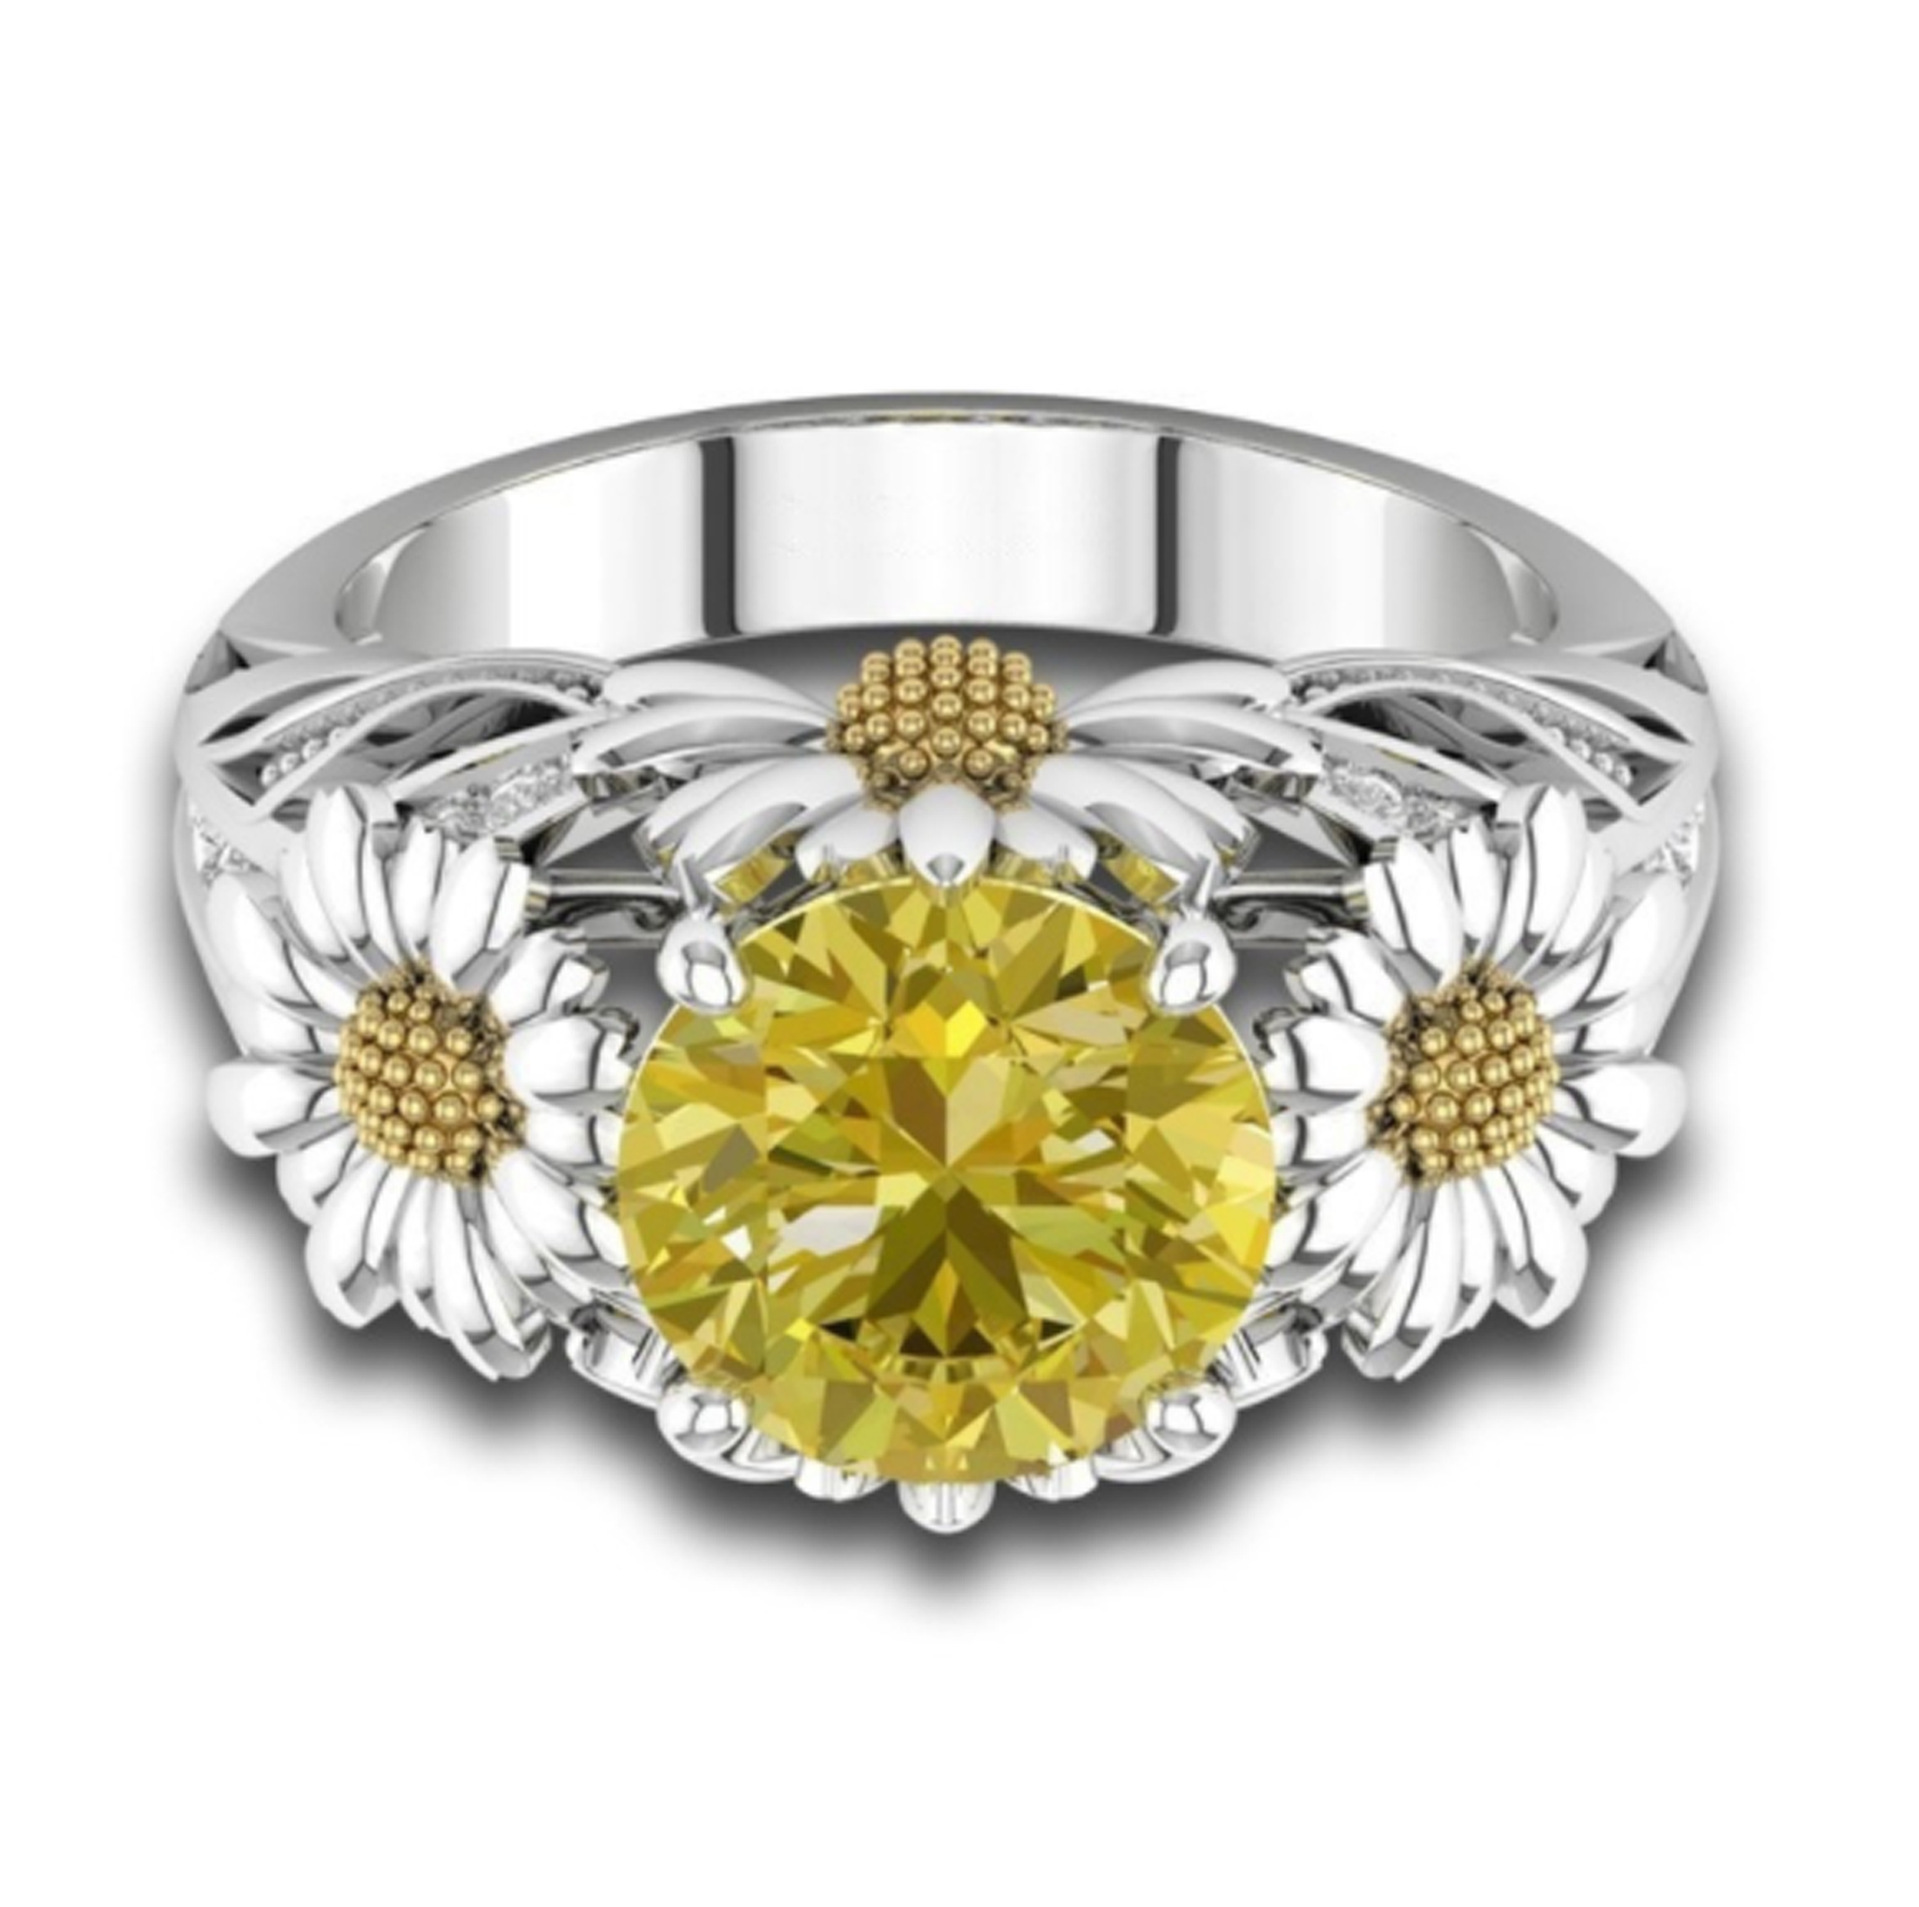 SILVER SUNFLOWER RING 6